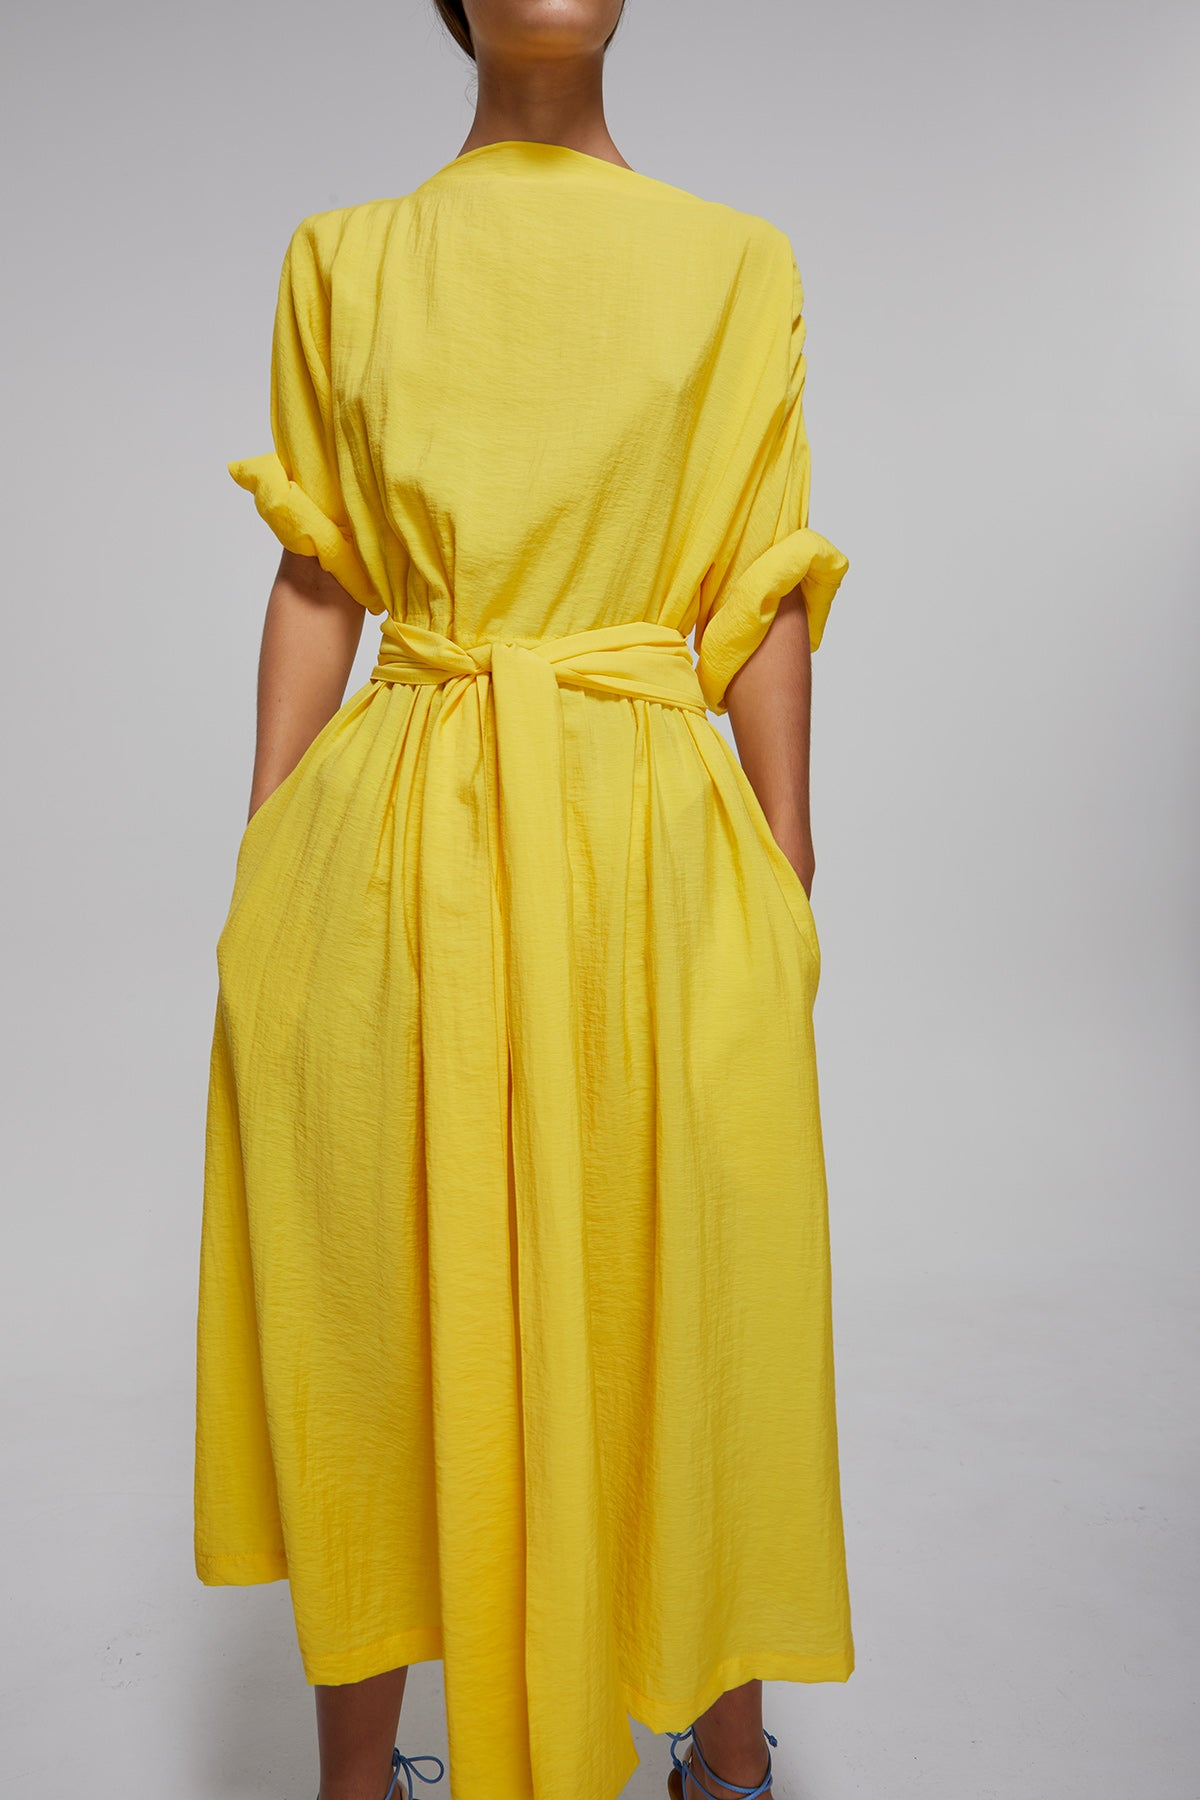 Omar Dress Gregory SS20 Collection NZ Sustainable Fashion Design